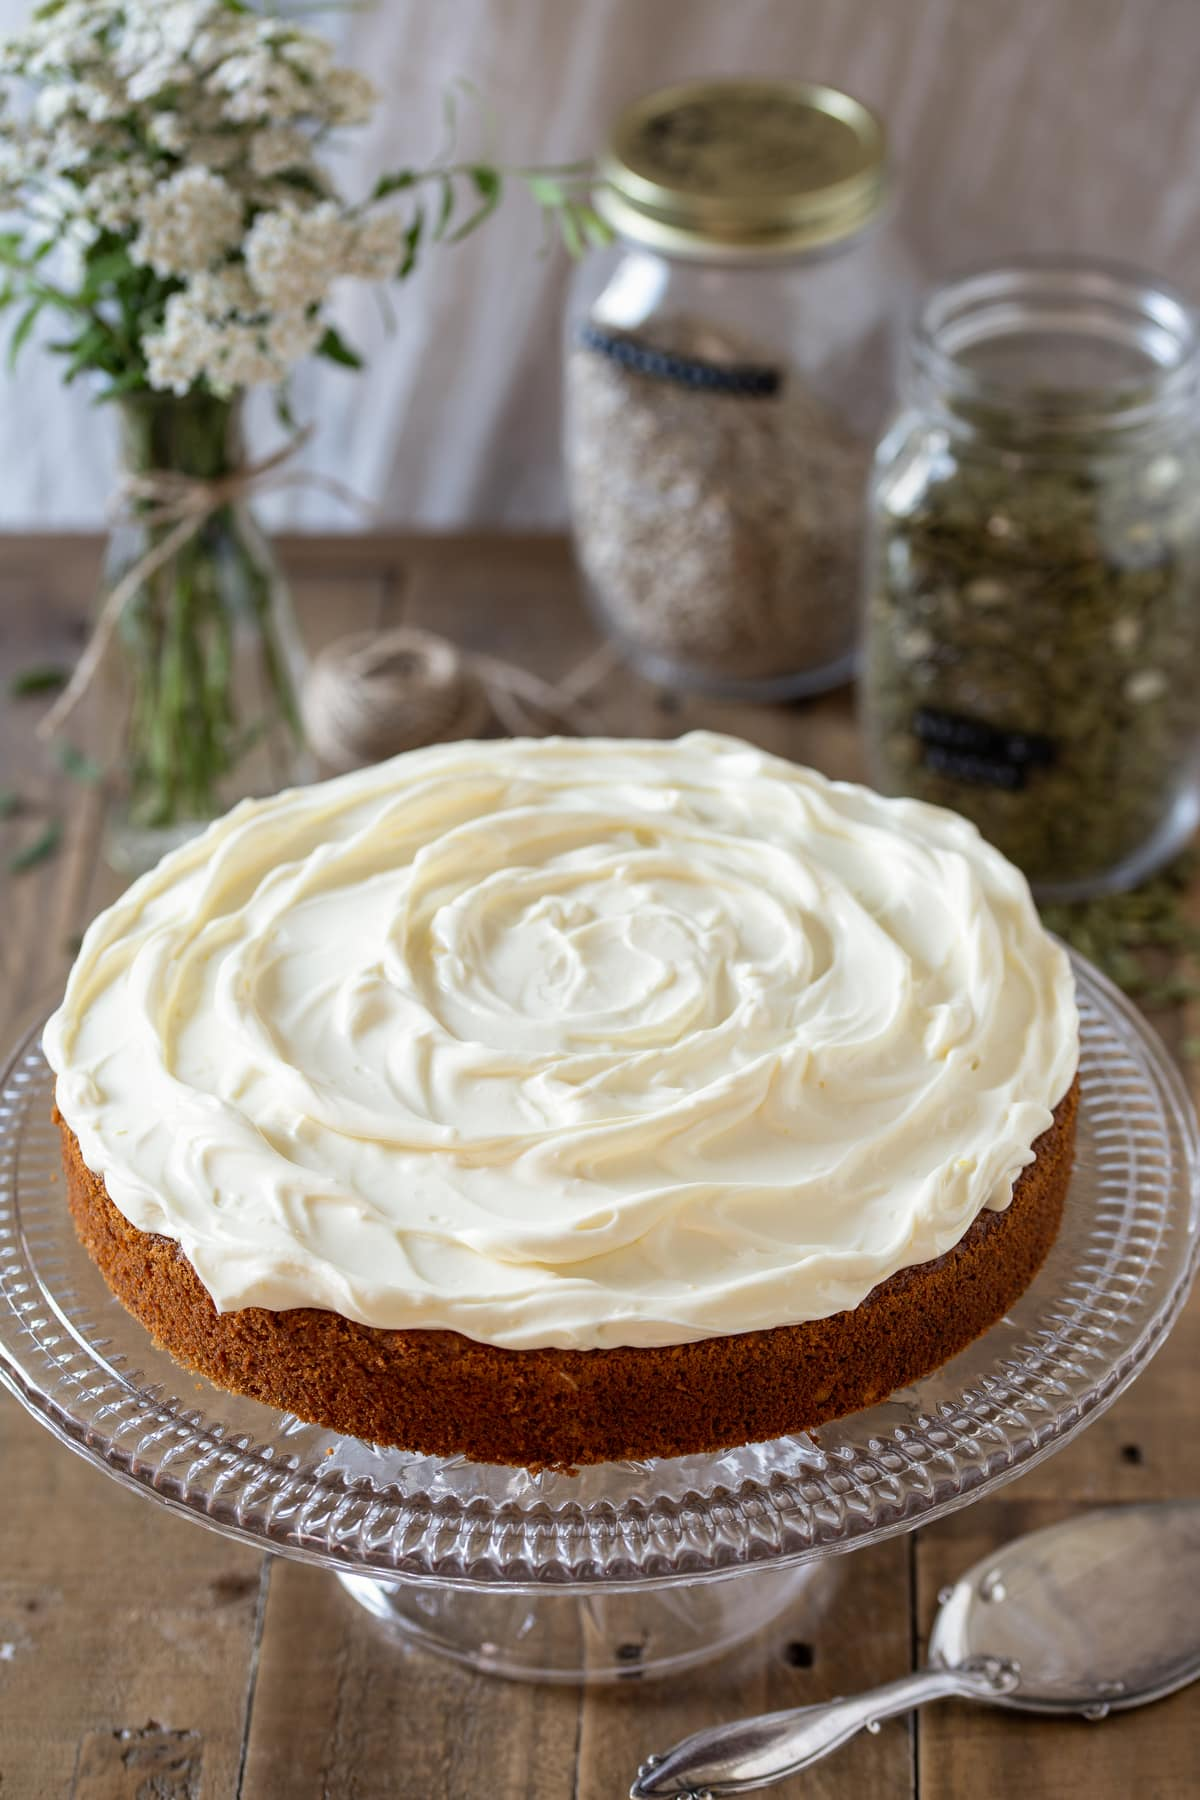 Carrot cake with cream cheese frosting on top.